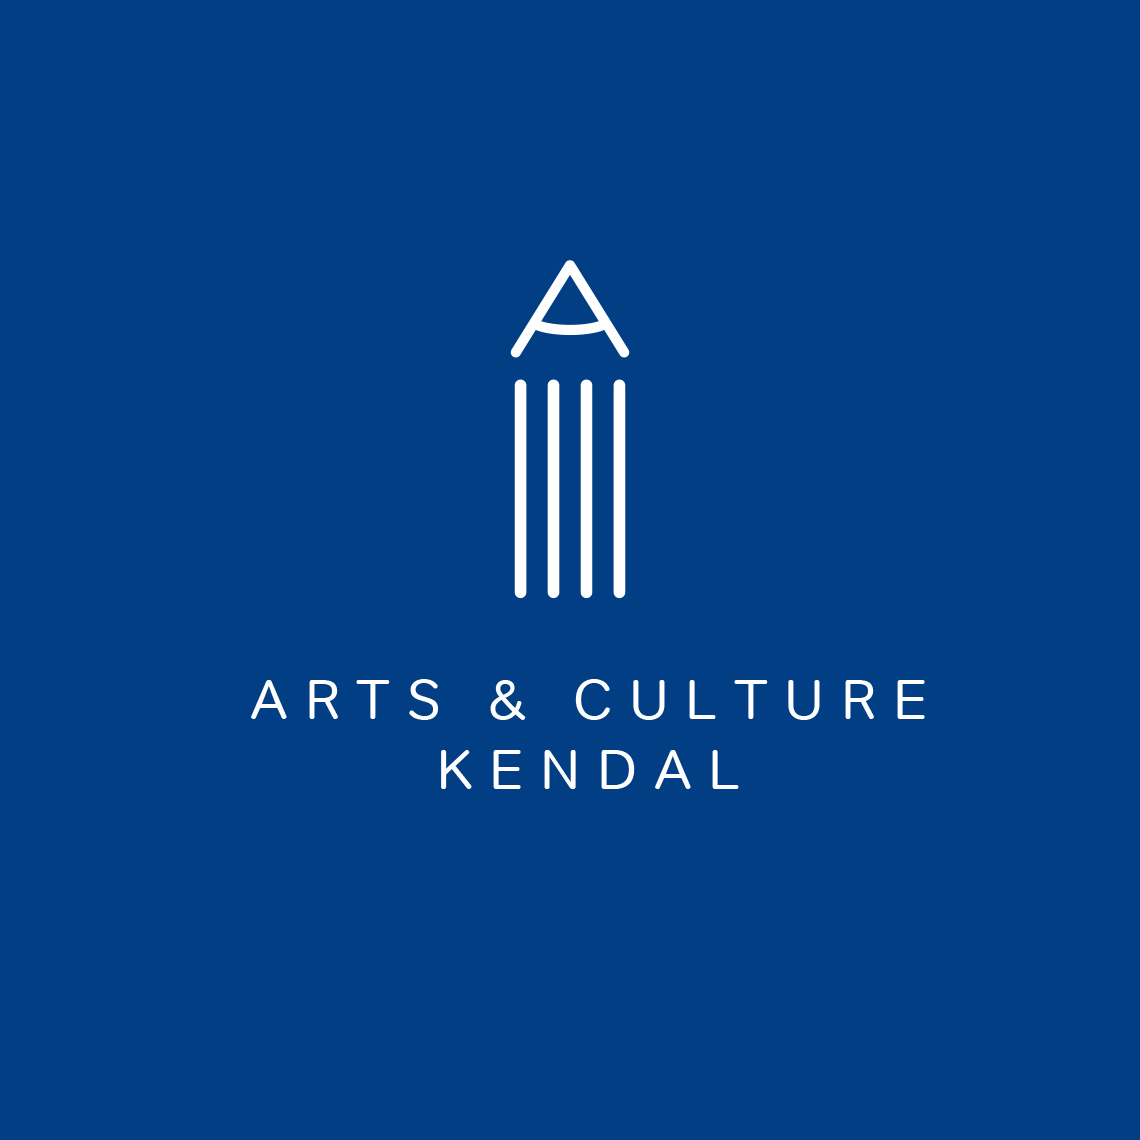 Kendal-Branding-Icon-Culture